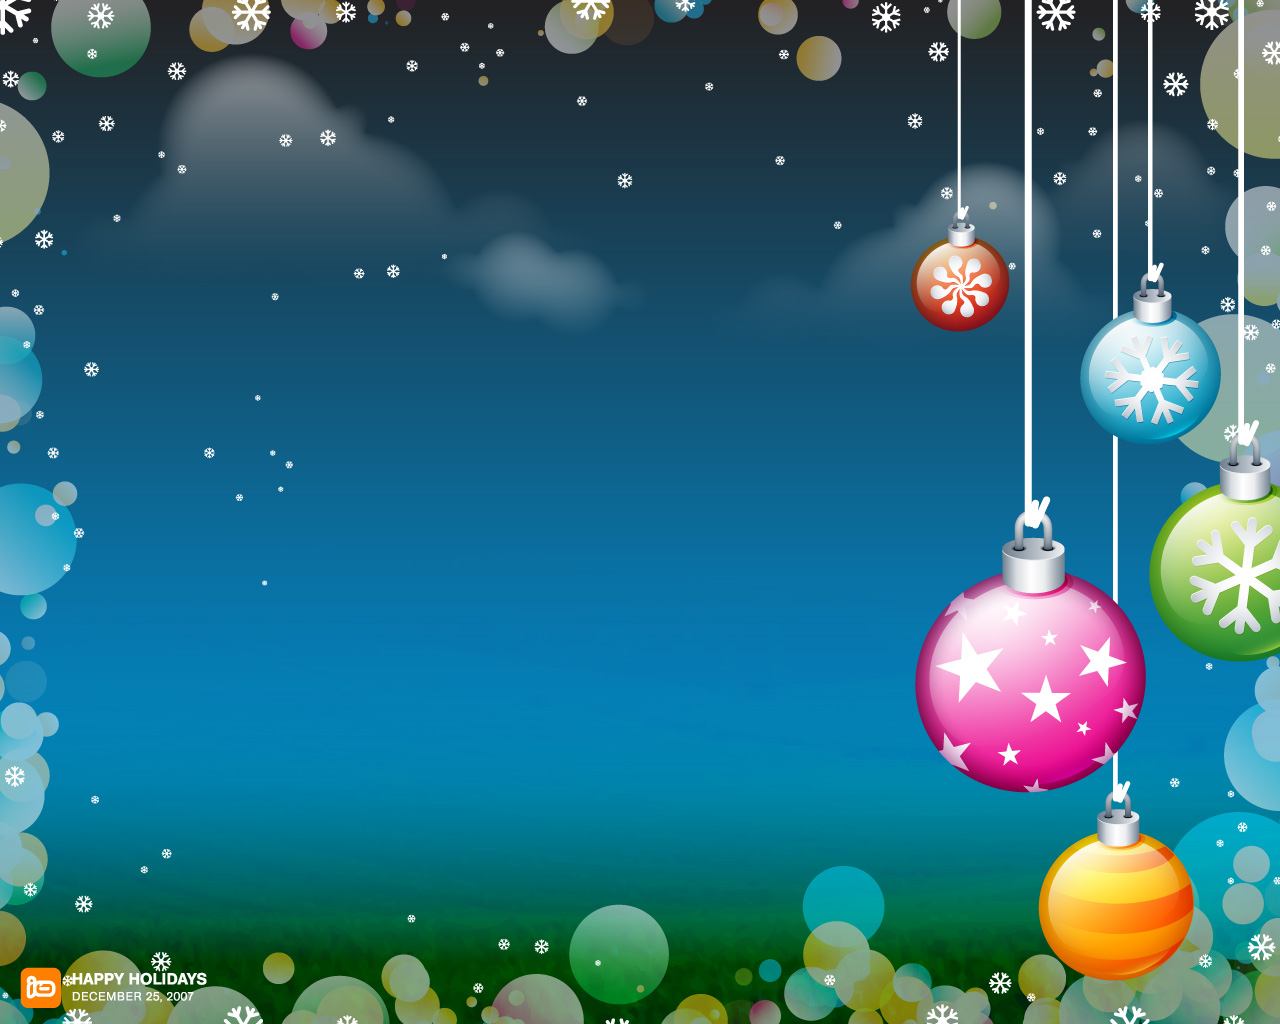 Christmas Holiday Backgrounds Wallpapers Wallpapers High 1280x1024